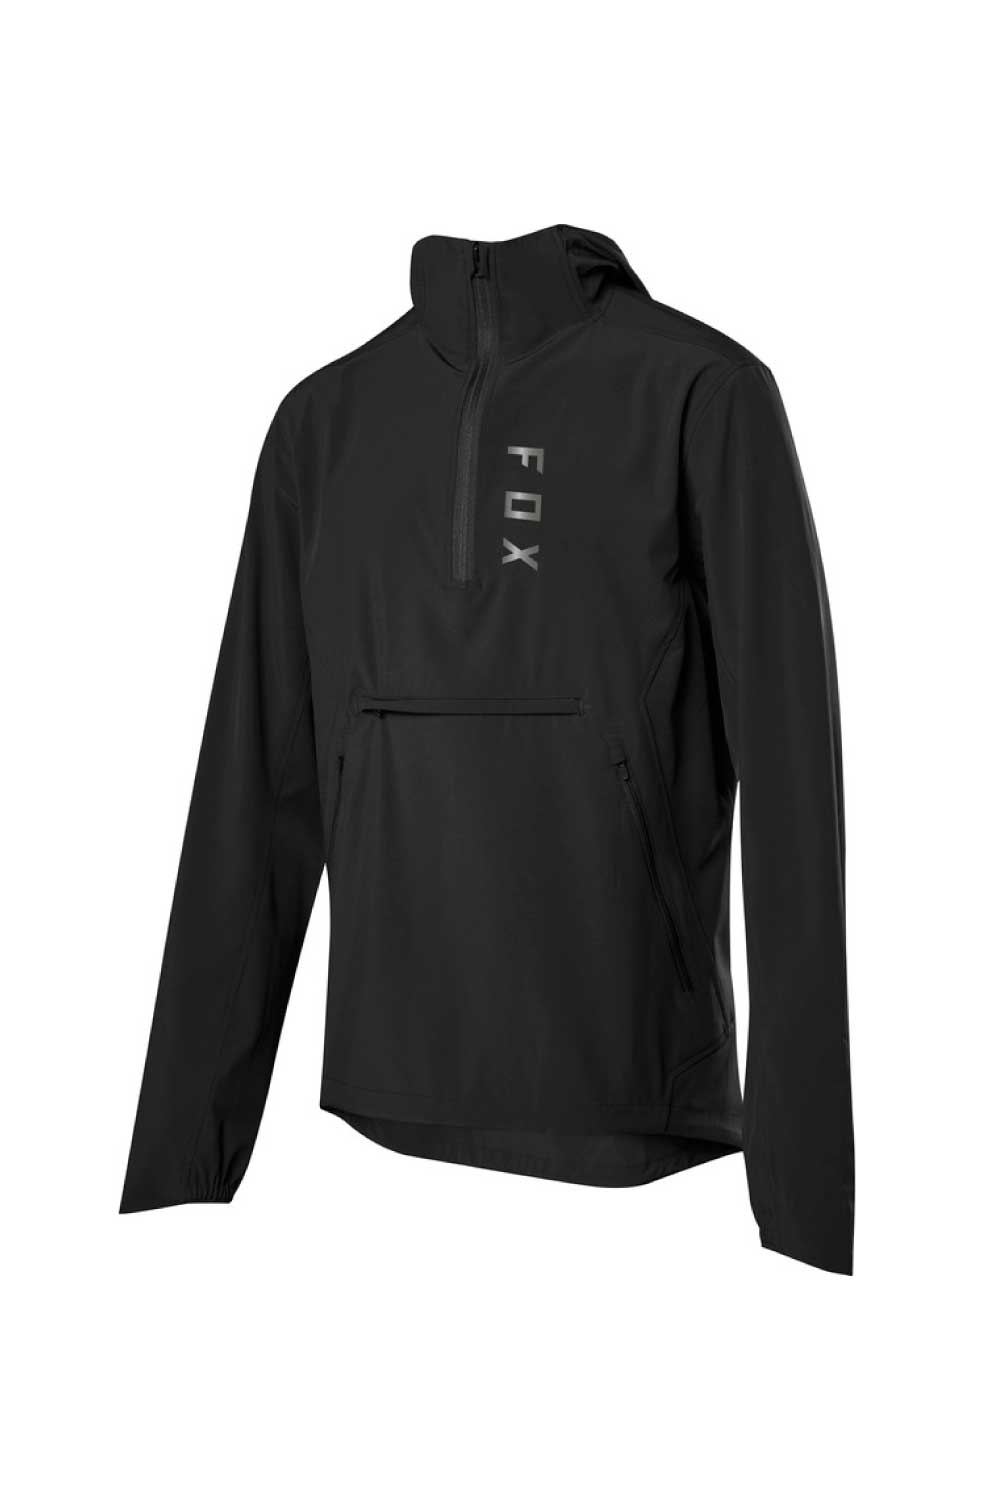 Fox Racing 2021 Ranger Wind Pull Over Jacket